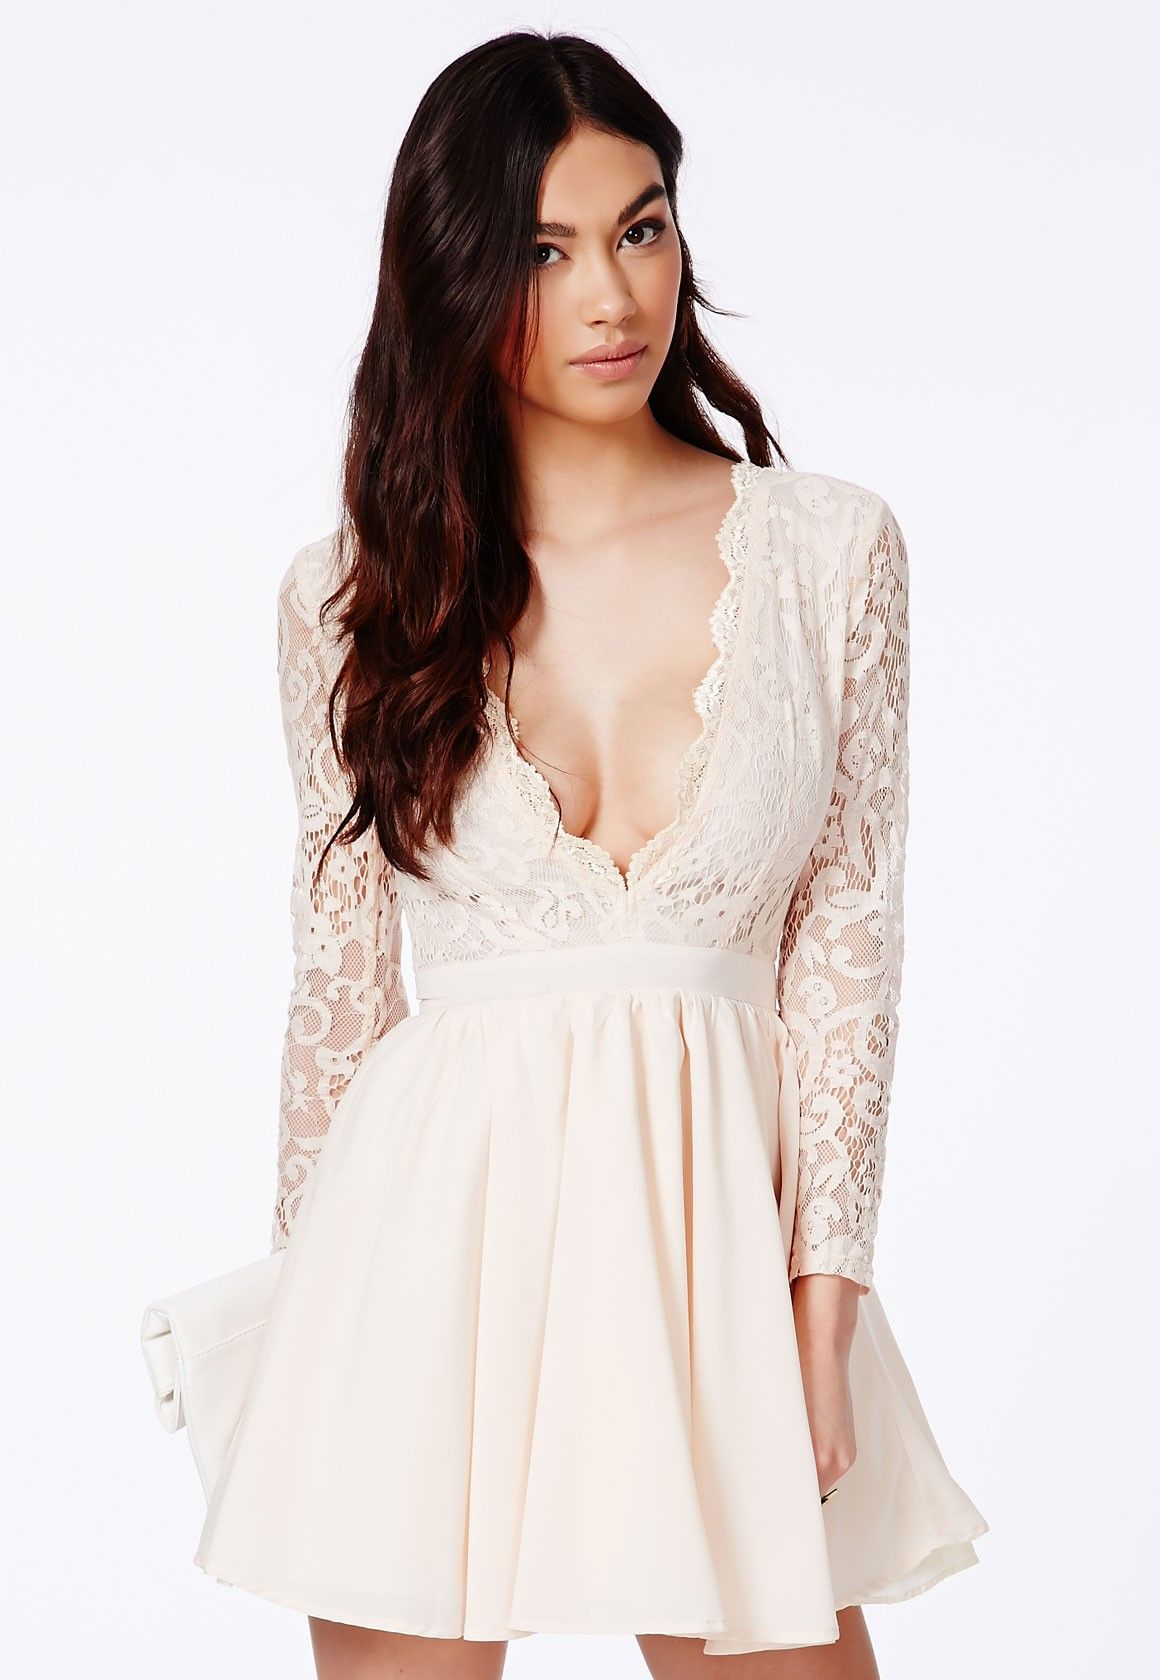 b425f6f69d9d Dayana Lace Sleeve Puff Ball Dress - Dresses - Skater Dresses - Missguided